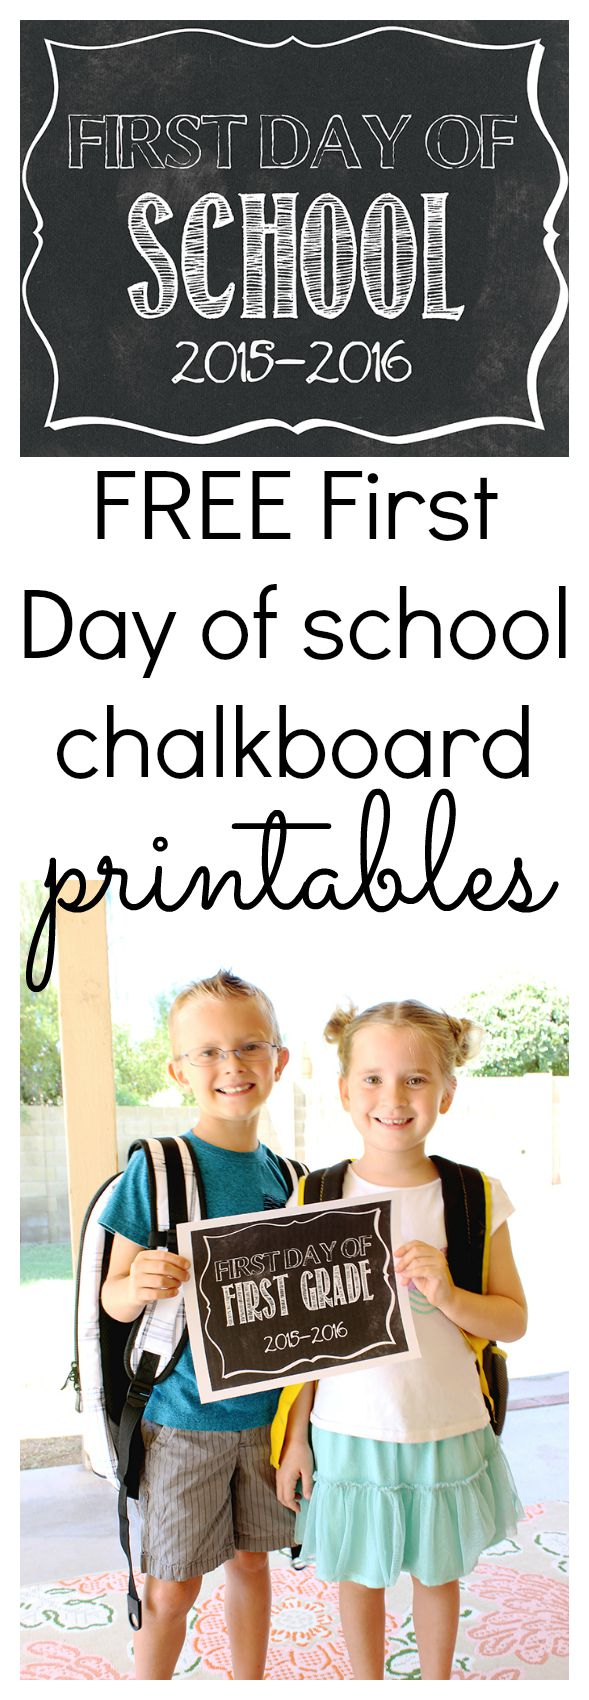 Free First Day of School Printables - Click to print yours - www.classyclutter.net